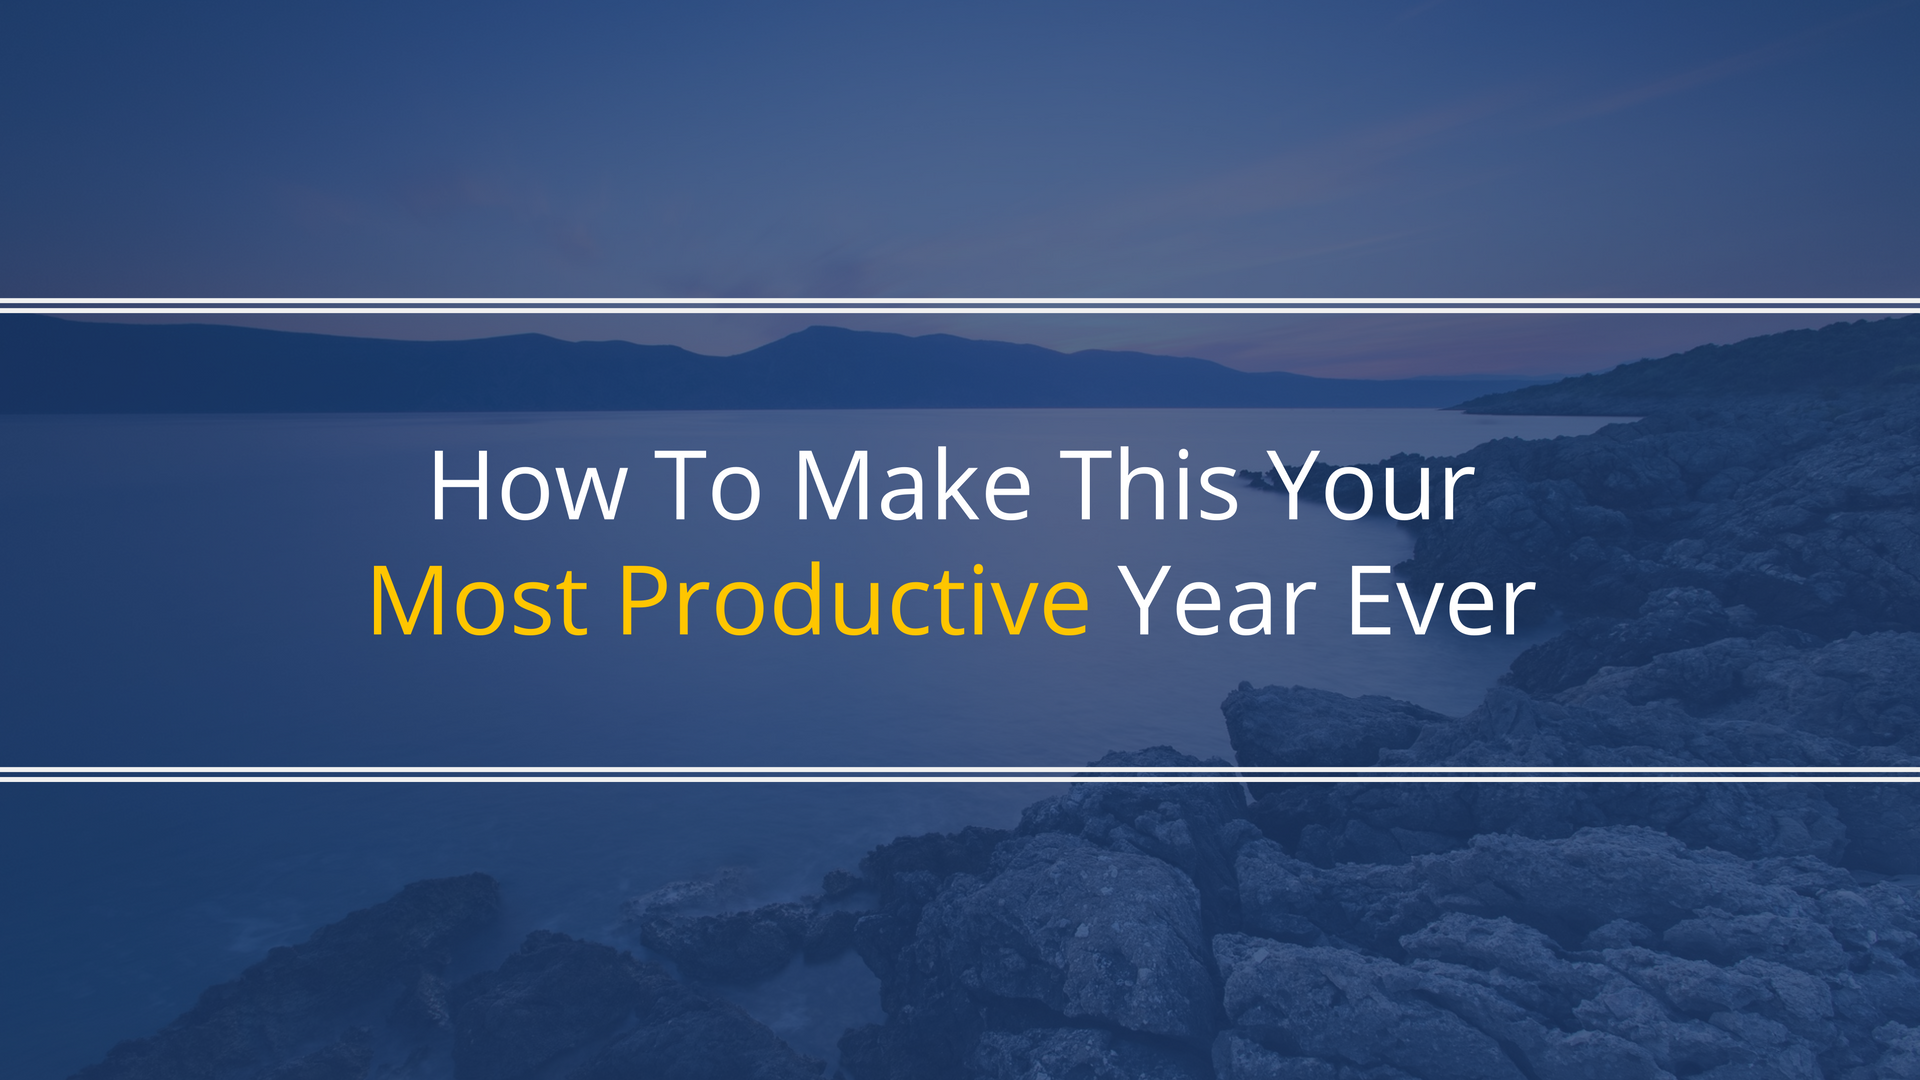 How To Make This Your Most Productive Year Ever